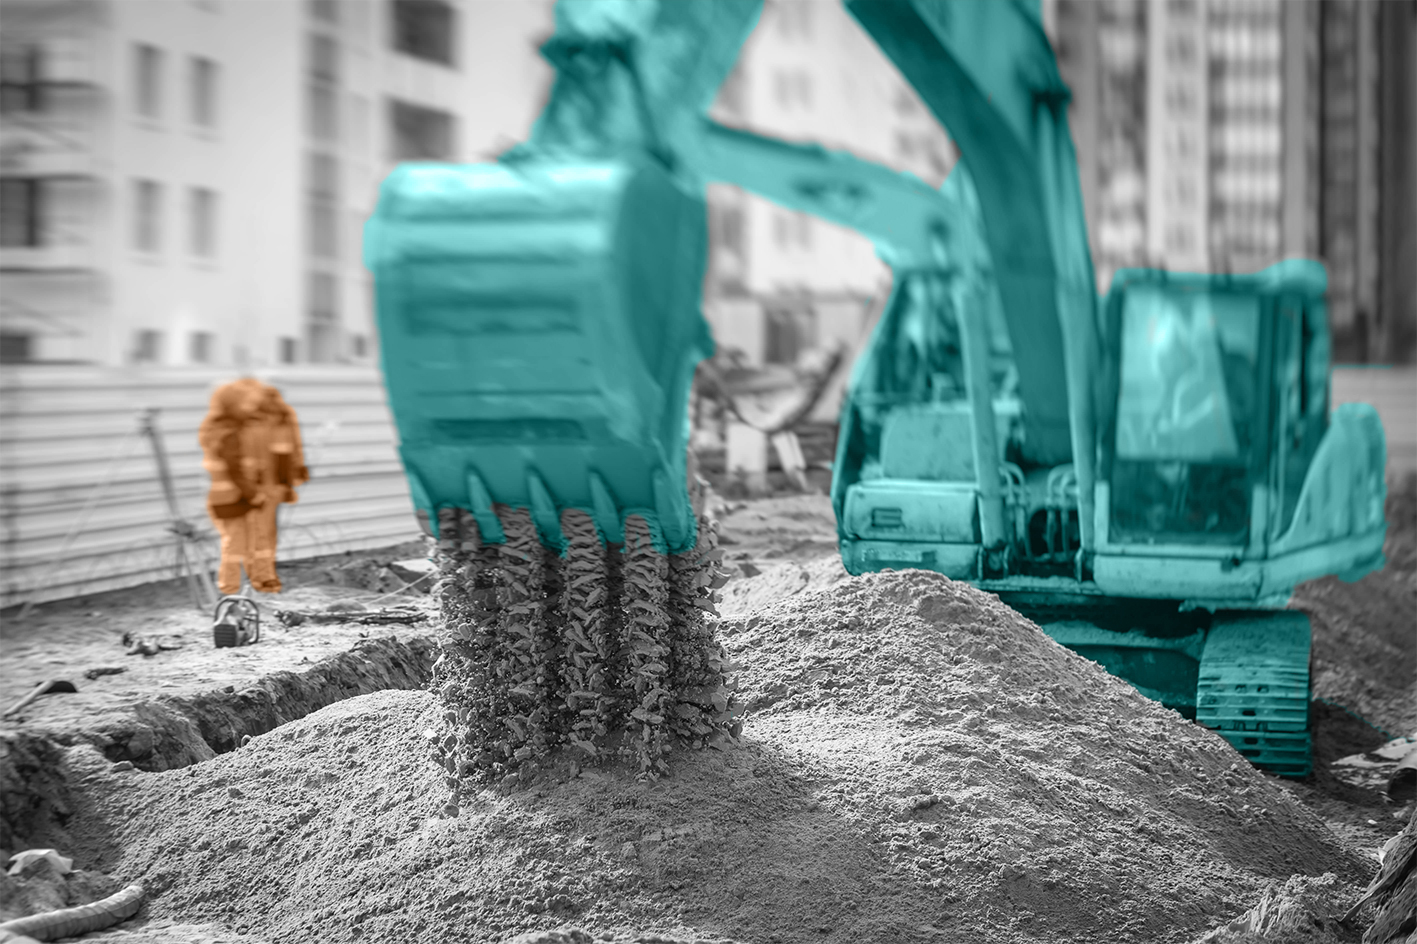 photo of construction site with excavator